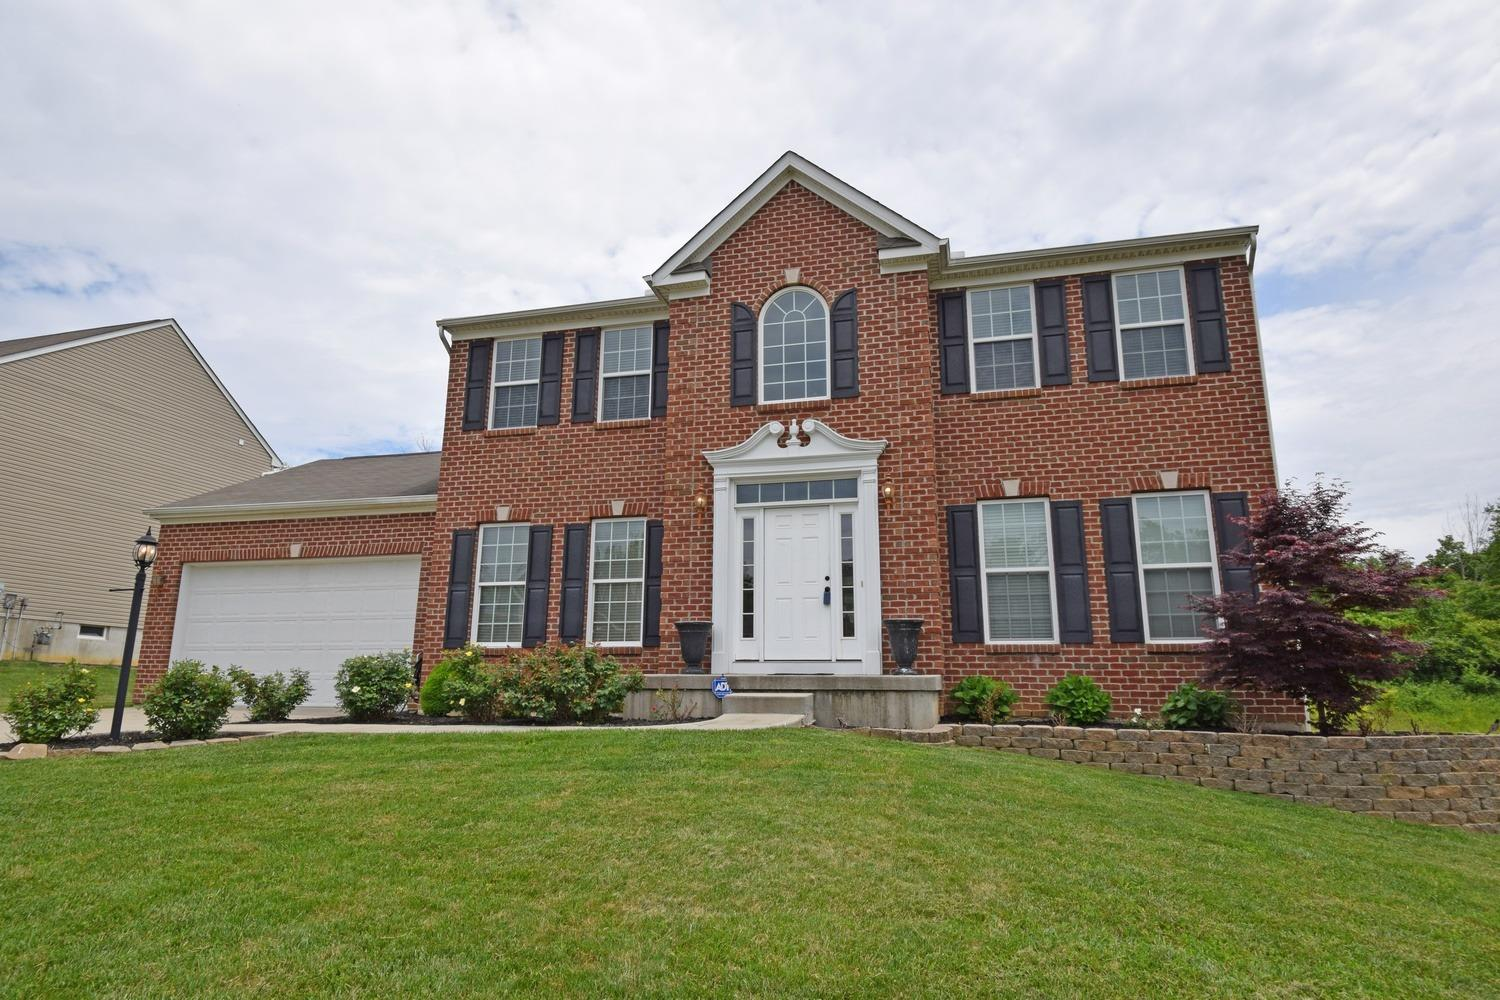 Property for sale at 8922 Summer Crest Drive, Colerain Twp,  Ohio 45251